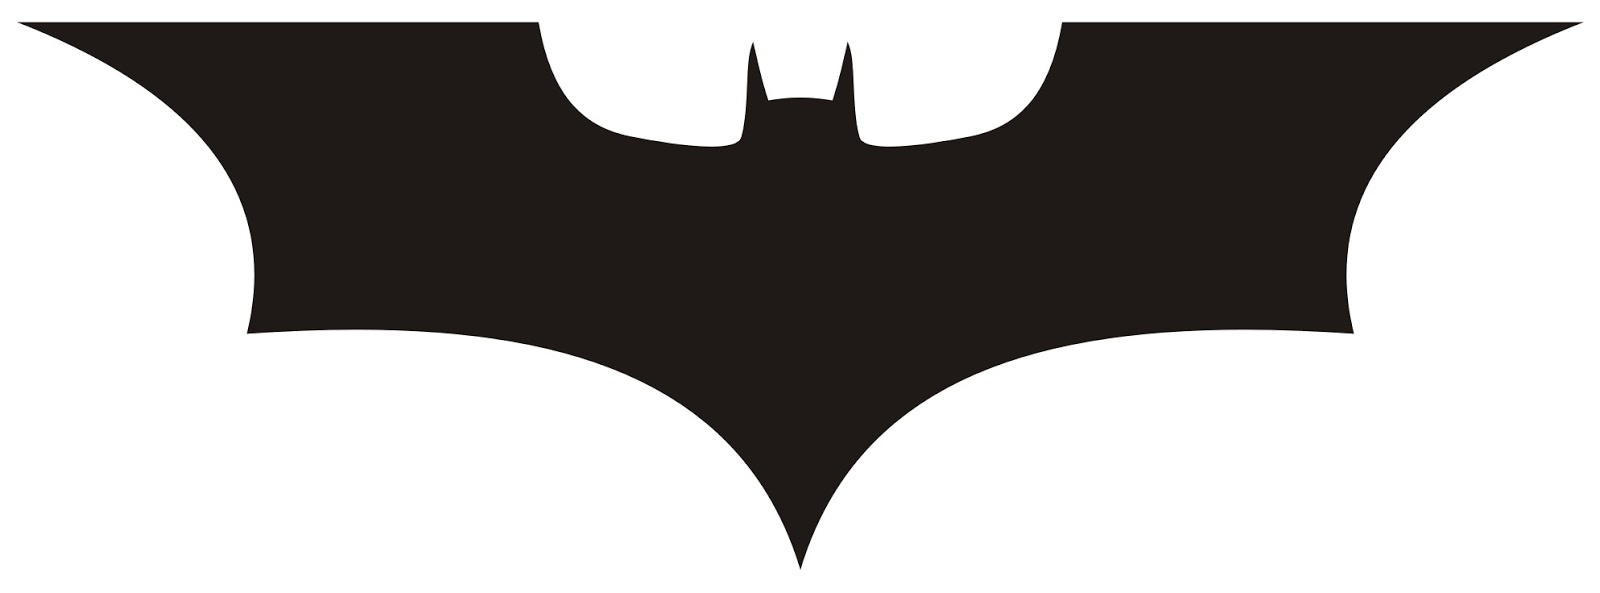 Words From The Dark Side The Dark Knight Rises 2012: batman symbol